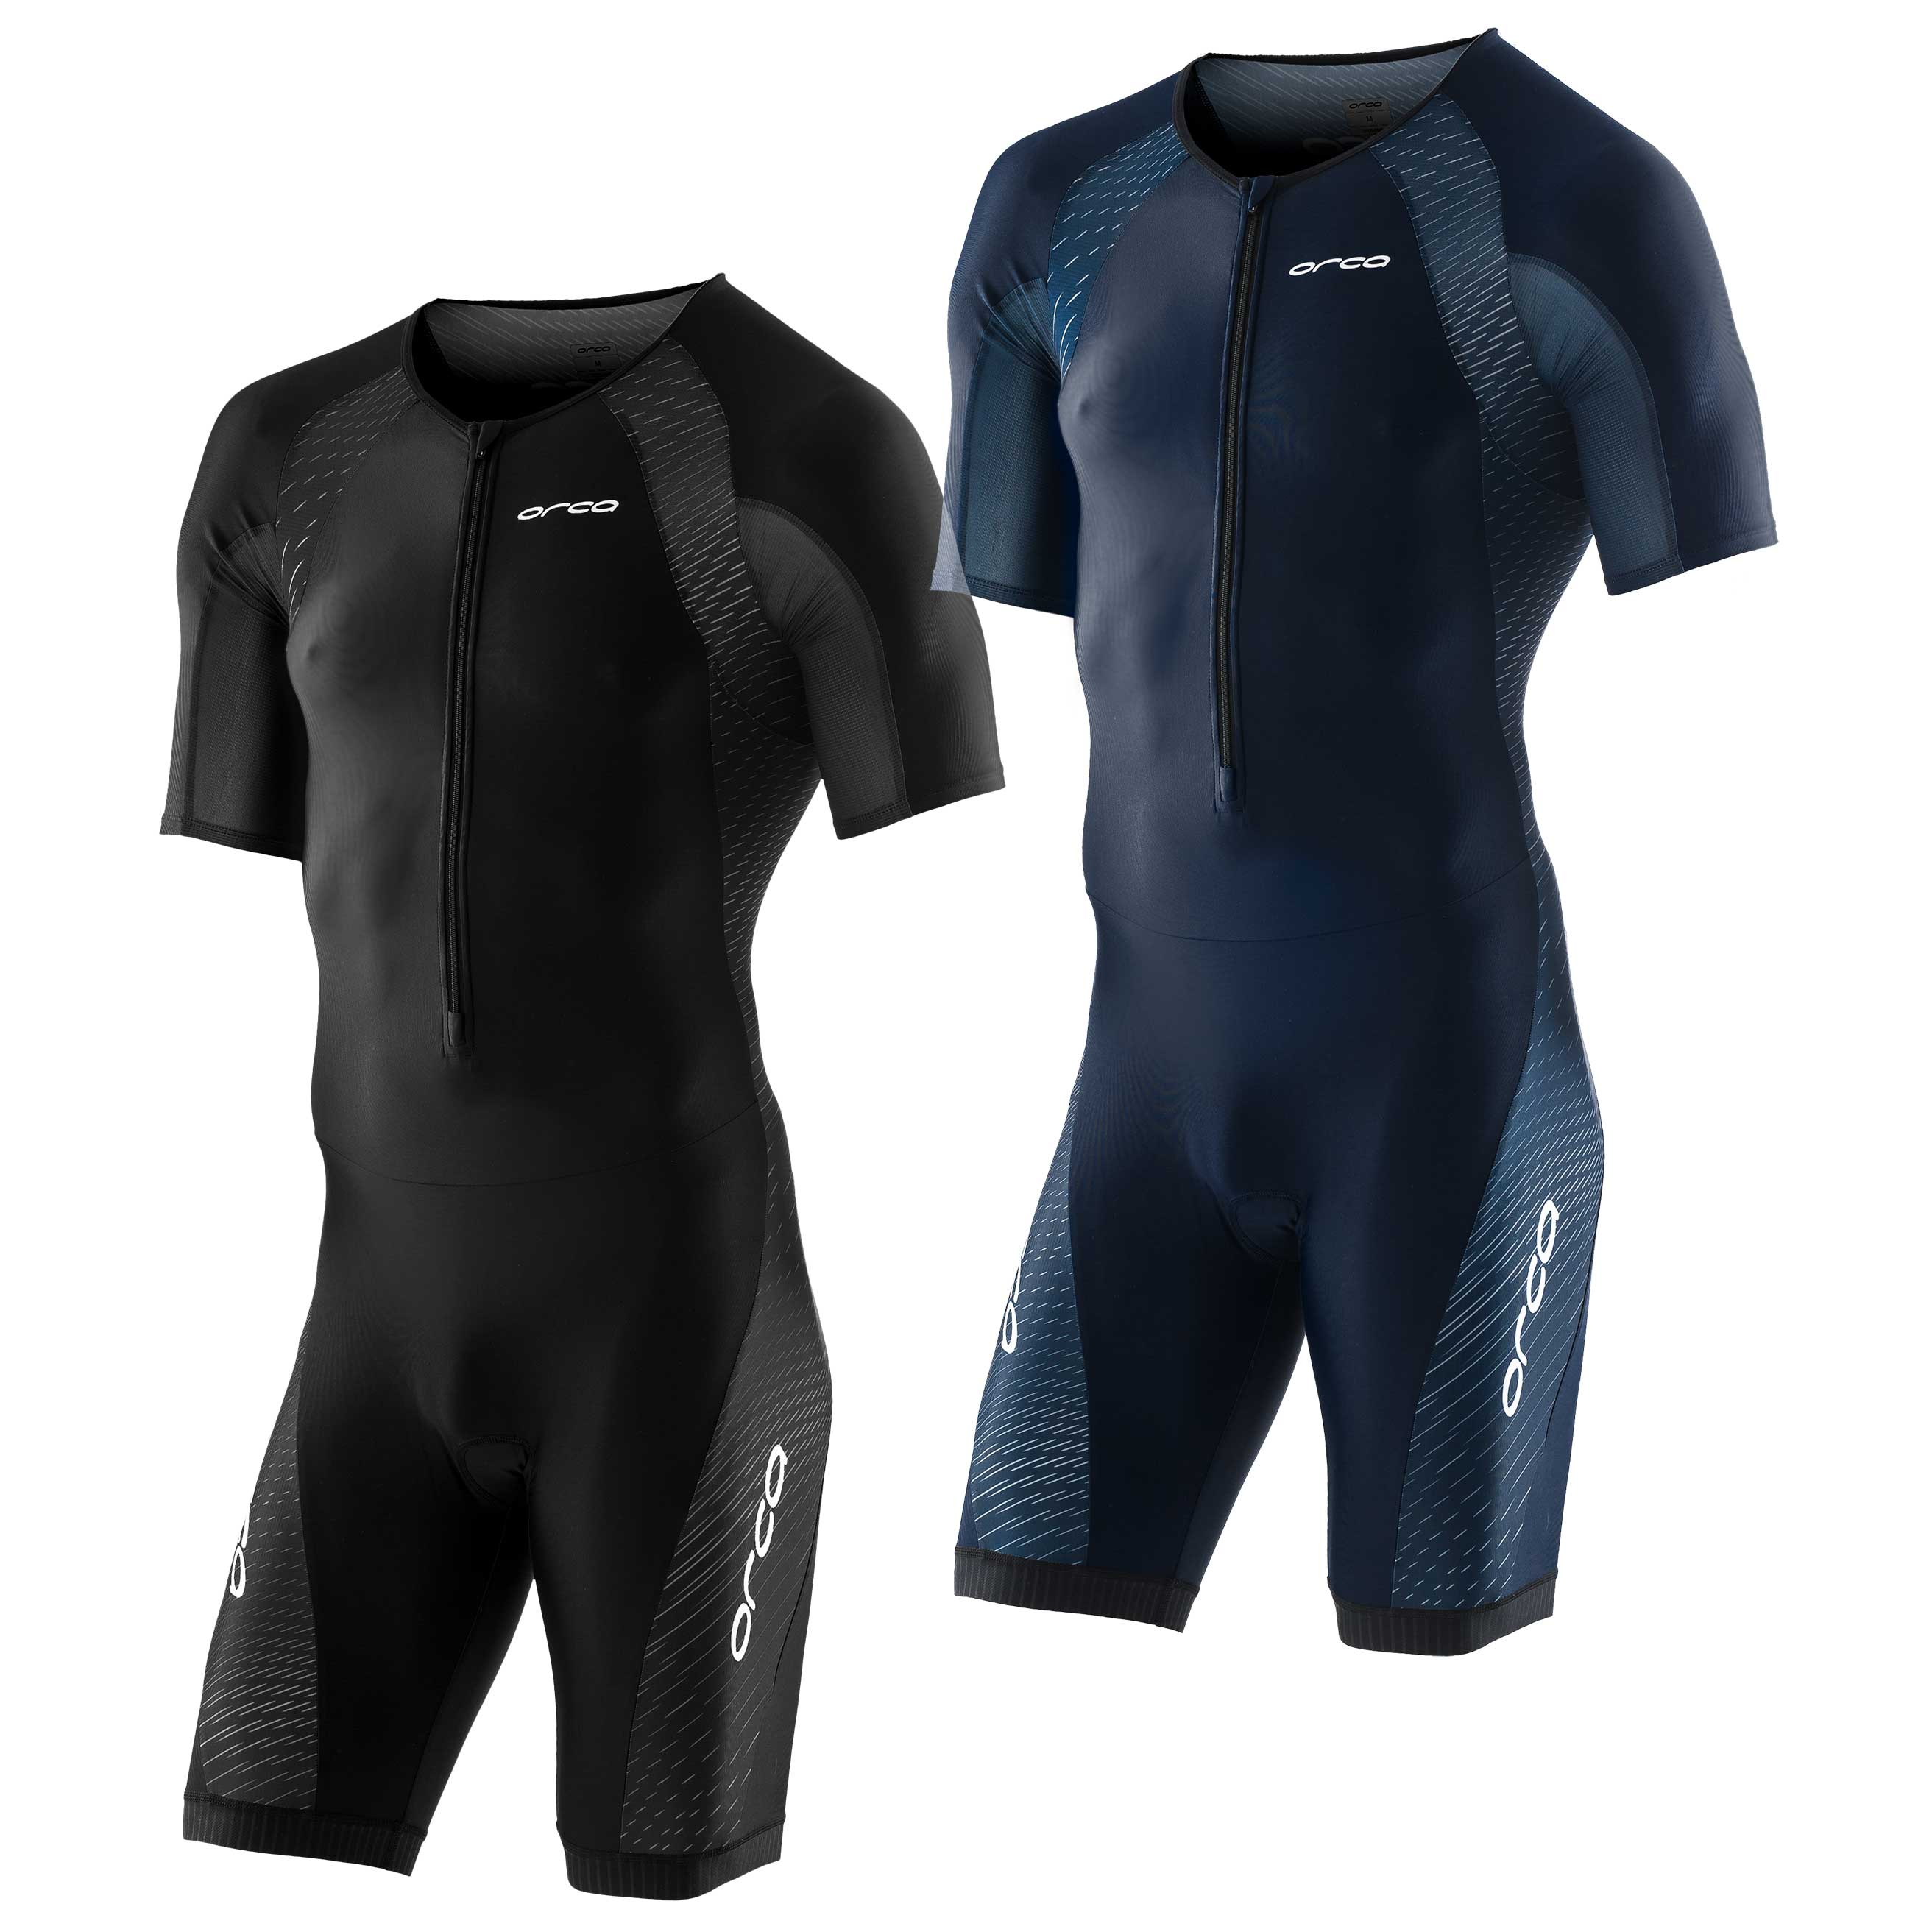 Orca Core Aero Triathlon Race Suit